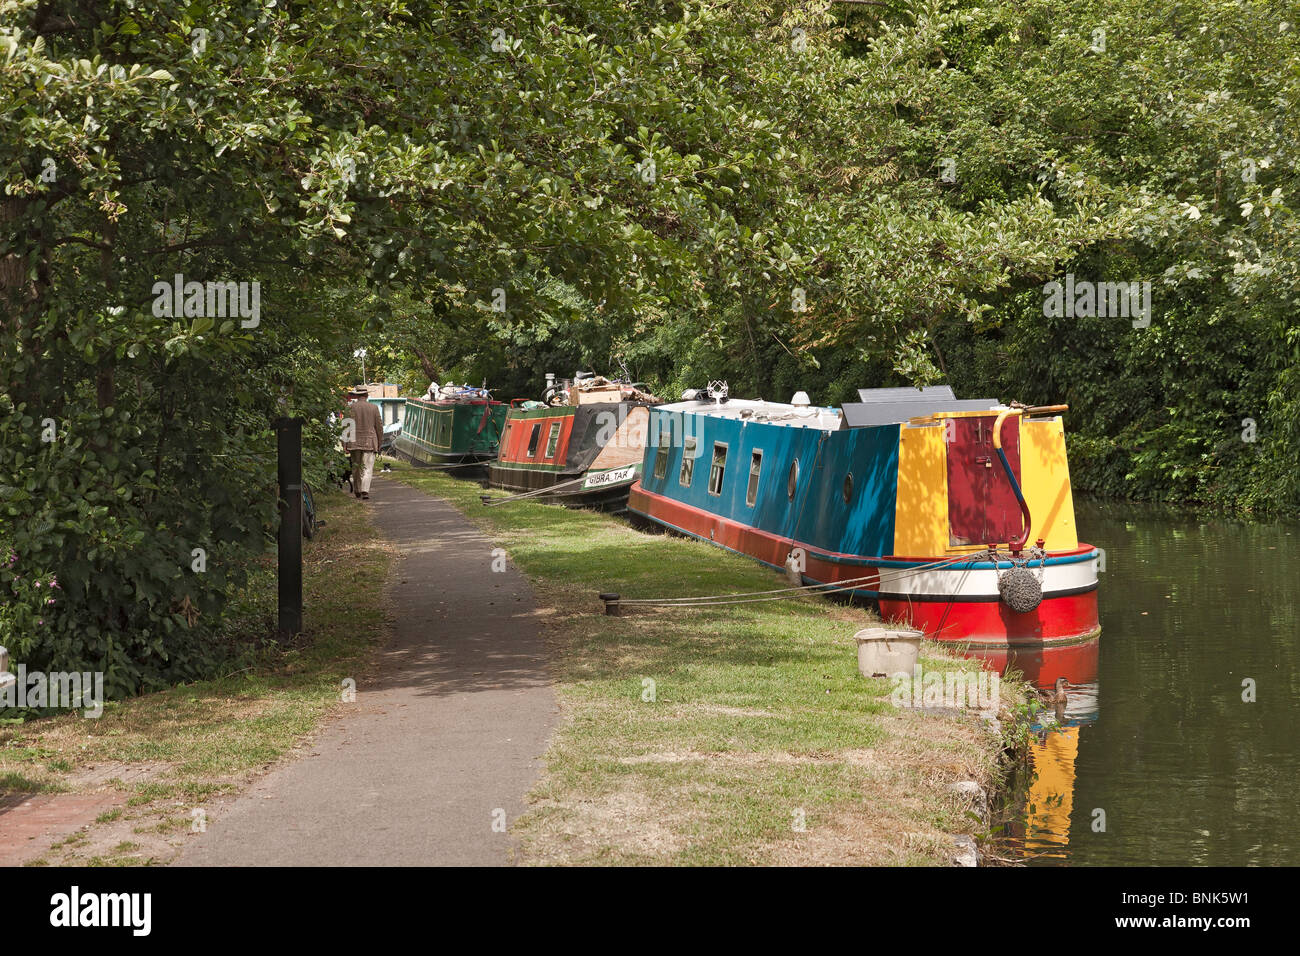 UK Oxford Barges On The Canal - Stock Image